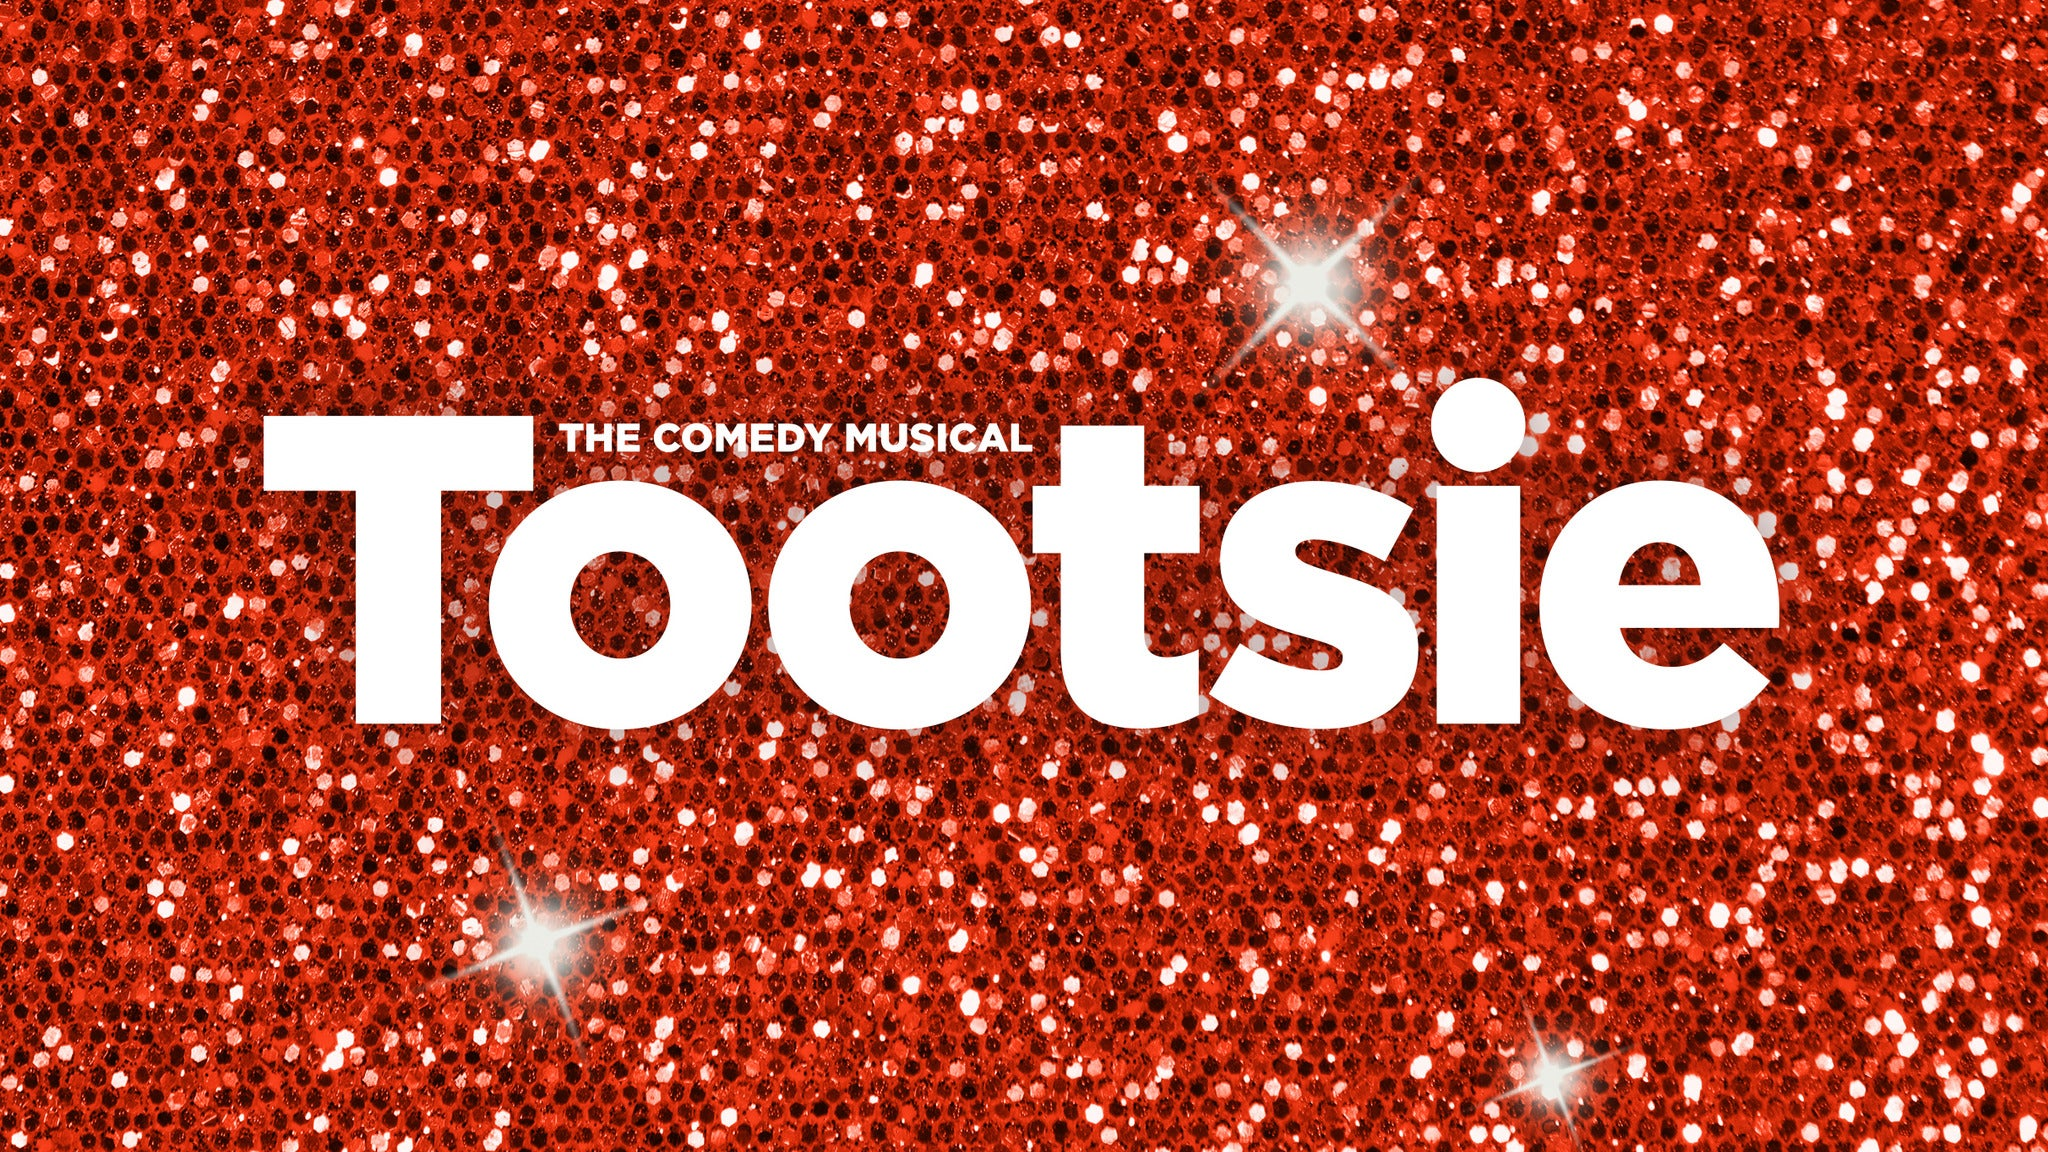 Tootsie (touring) pre-sale password for early tickets in Buffalo